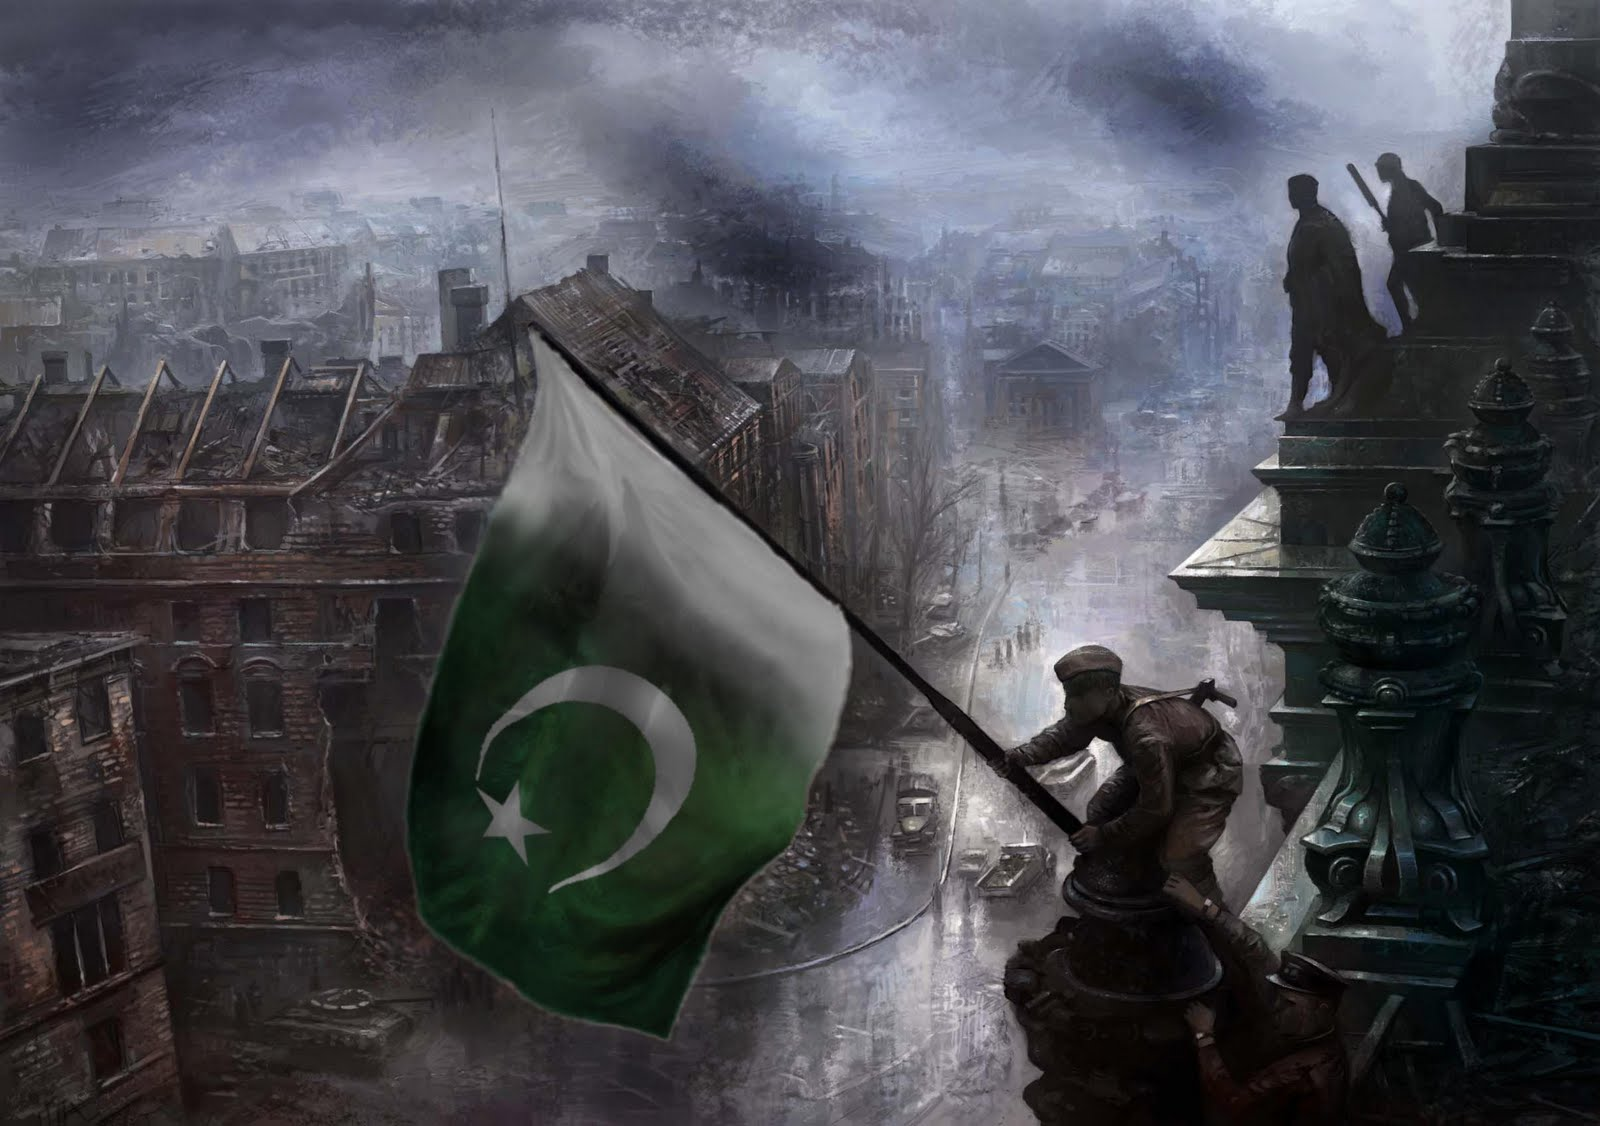 http://1.bp.blogspot.com/--Lr1sftmz8M/TdWMPJ2uZmI/AAAAAAAABEc/jvmrx4-GAbI/s1600/Wallpapers+Flag+of+Pakistan+Pakistani+Flag+Graphics+%25282%2529.jpg